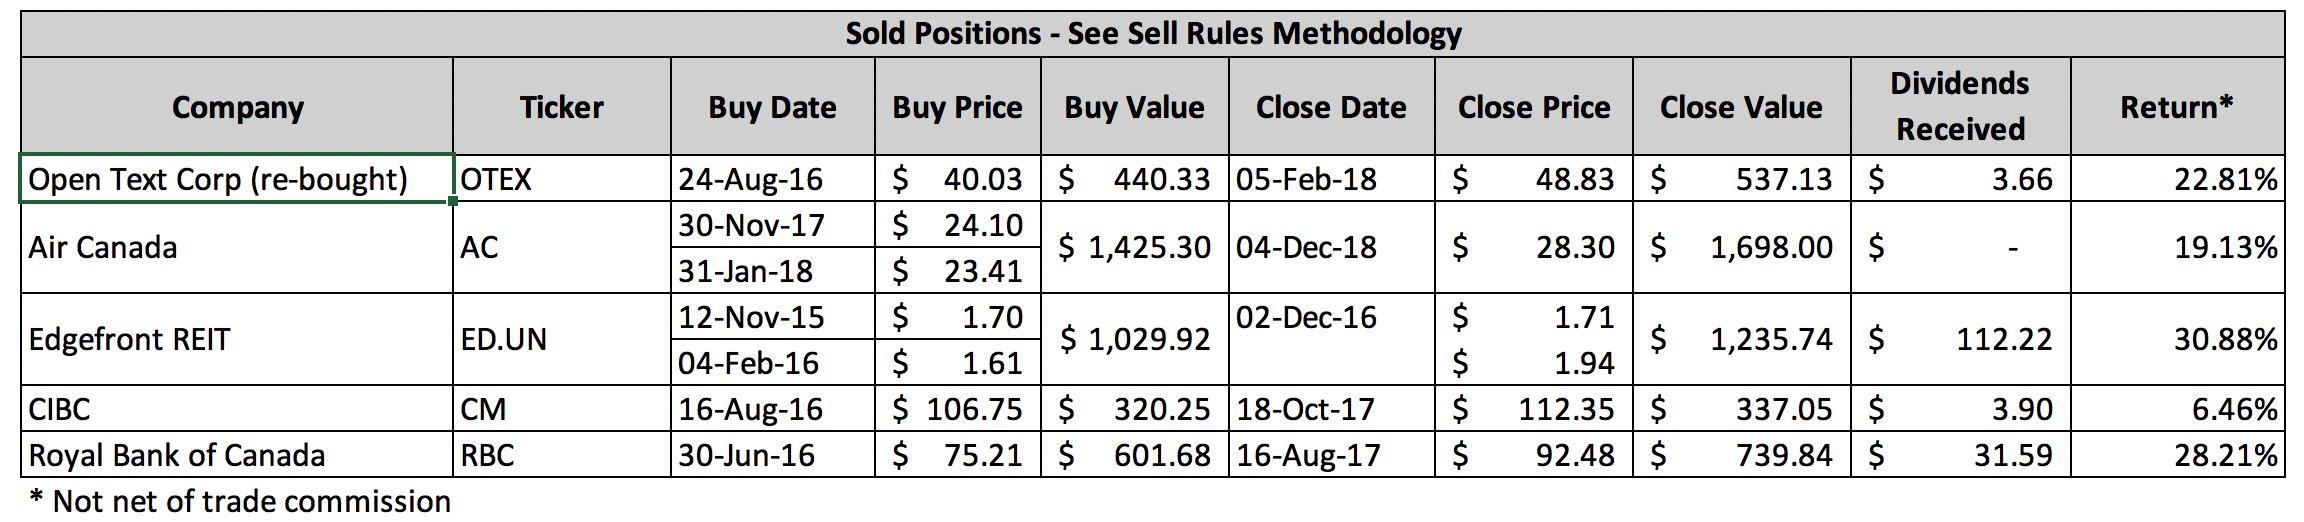 Sold Positions